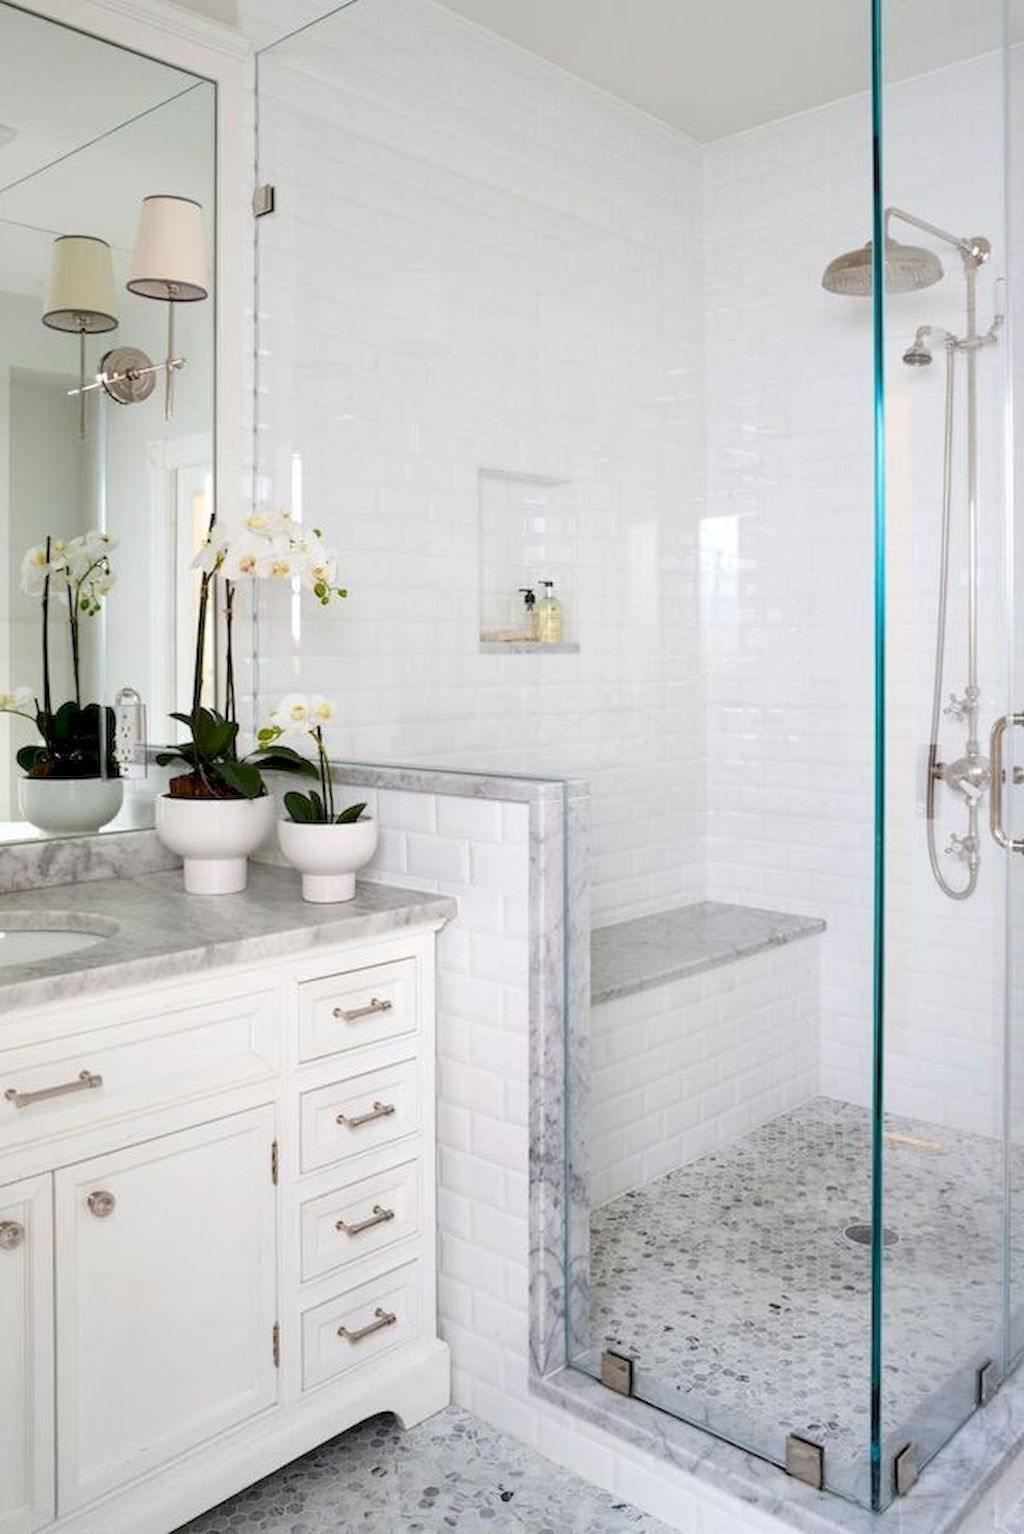 Cool 55 Cool Small Master Bathroom Remodel Ideas https://homeastern ...